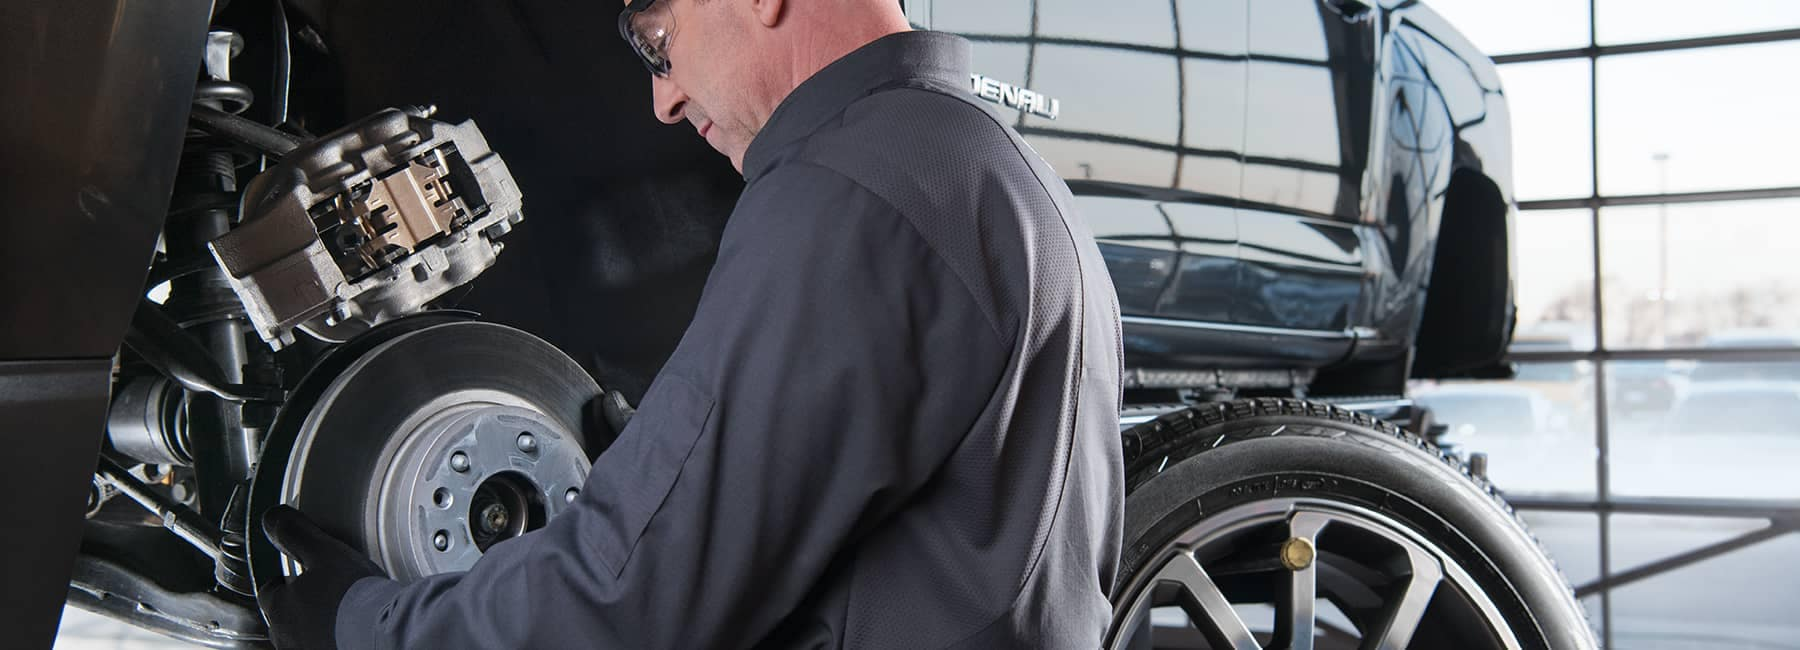 GMC Service Technician Working on Rotors and Brakes